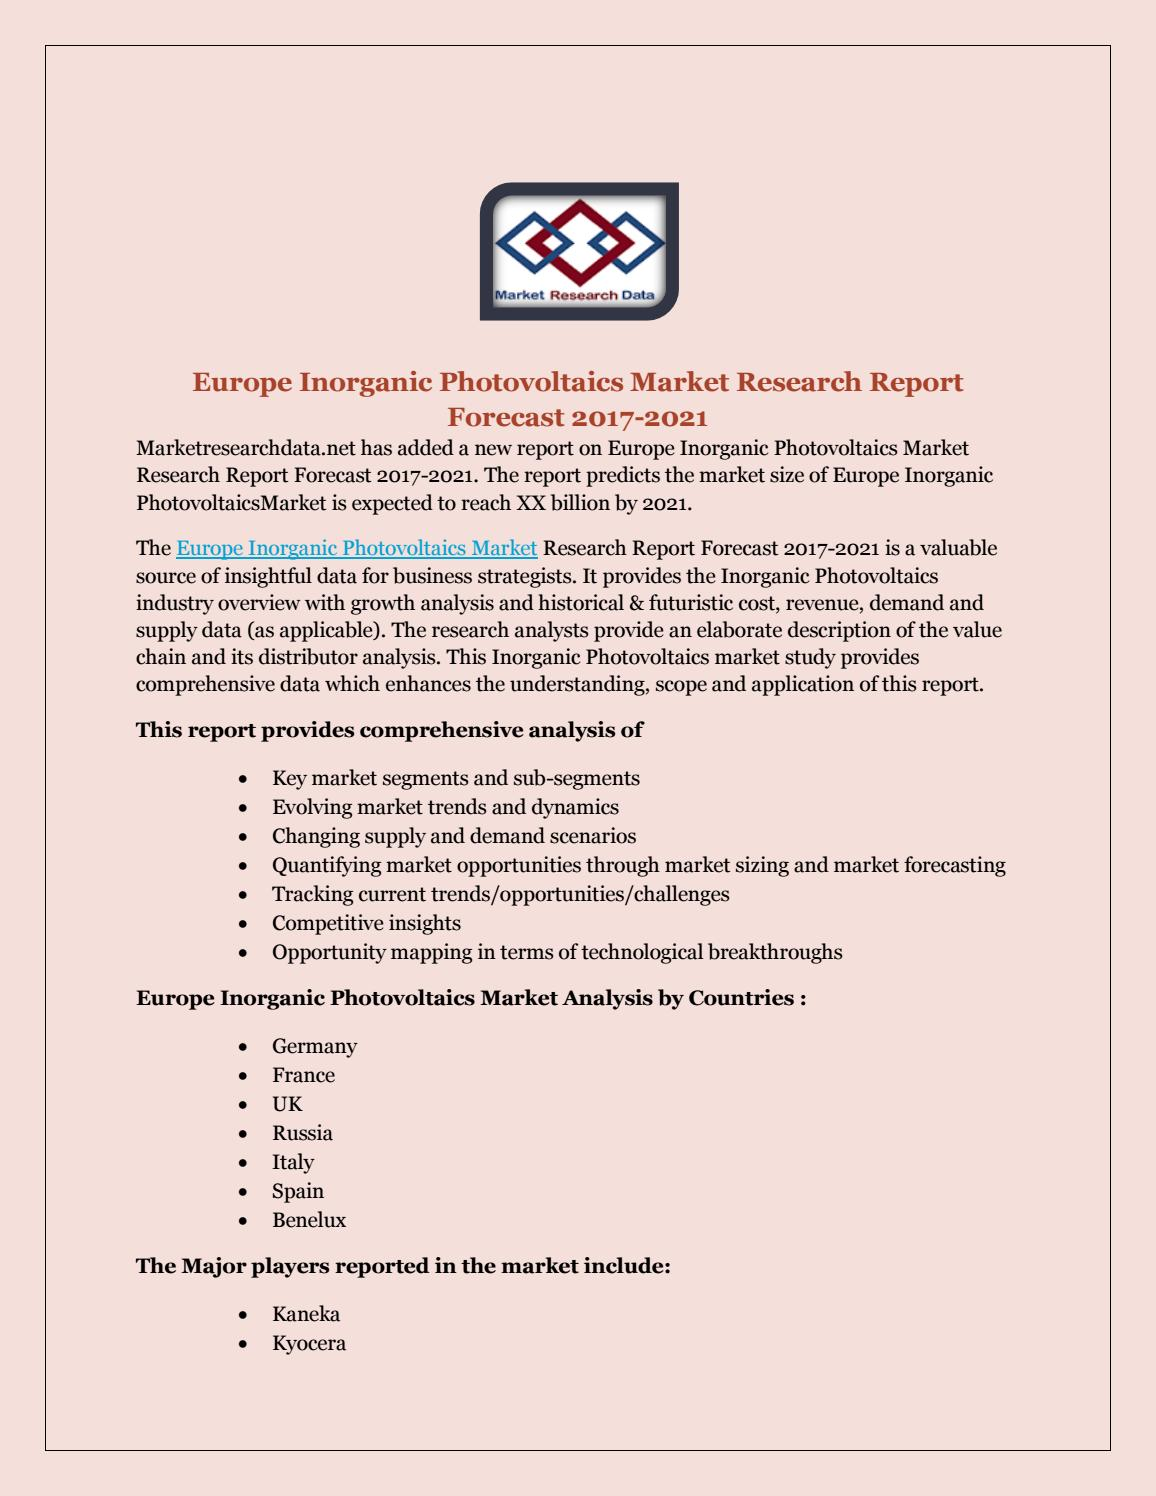 exploratory research assignment essay Exploratory research is flexible and can address research questions of all types (what, why, how) provides an opportunity to define new terms and clarify existing concepts exploratory research is often used to generate formal hypotheses and develop more precise research problems.